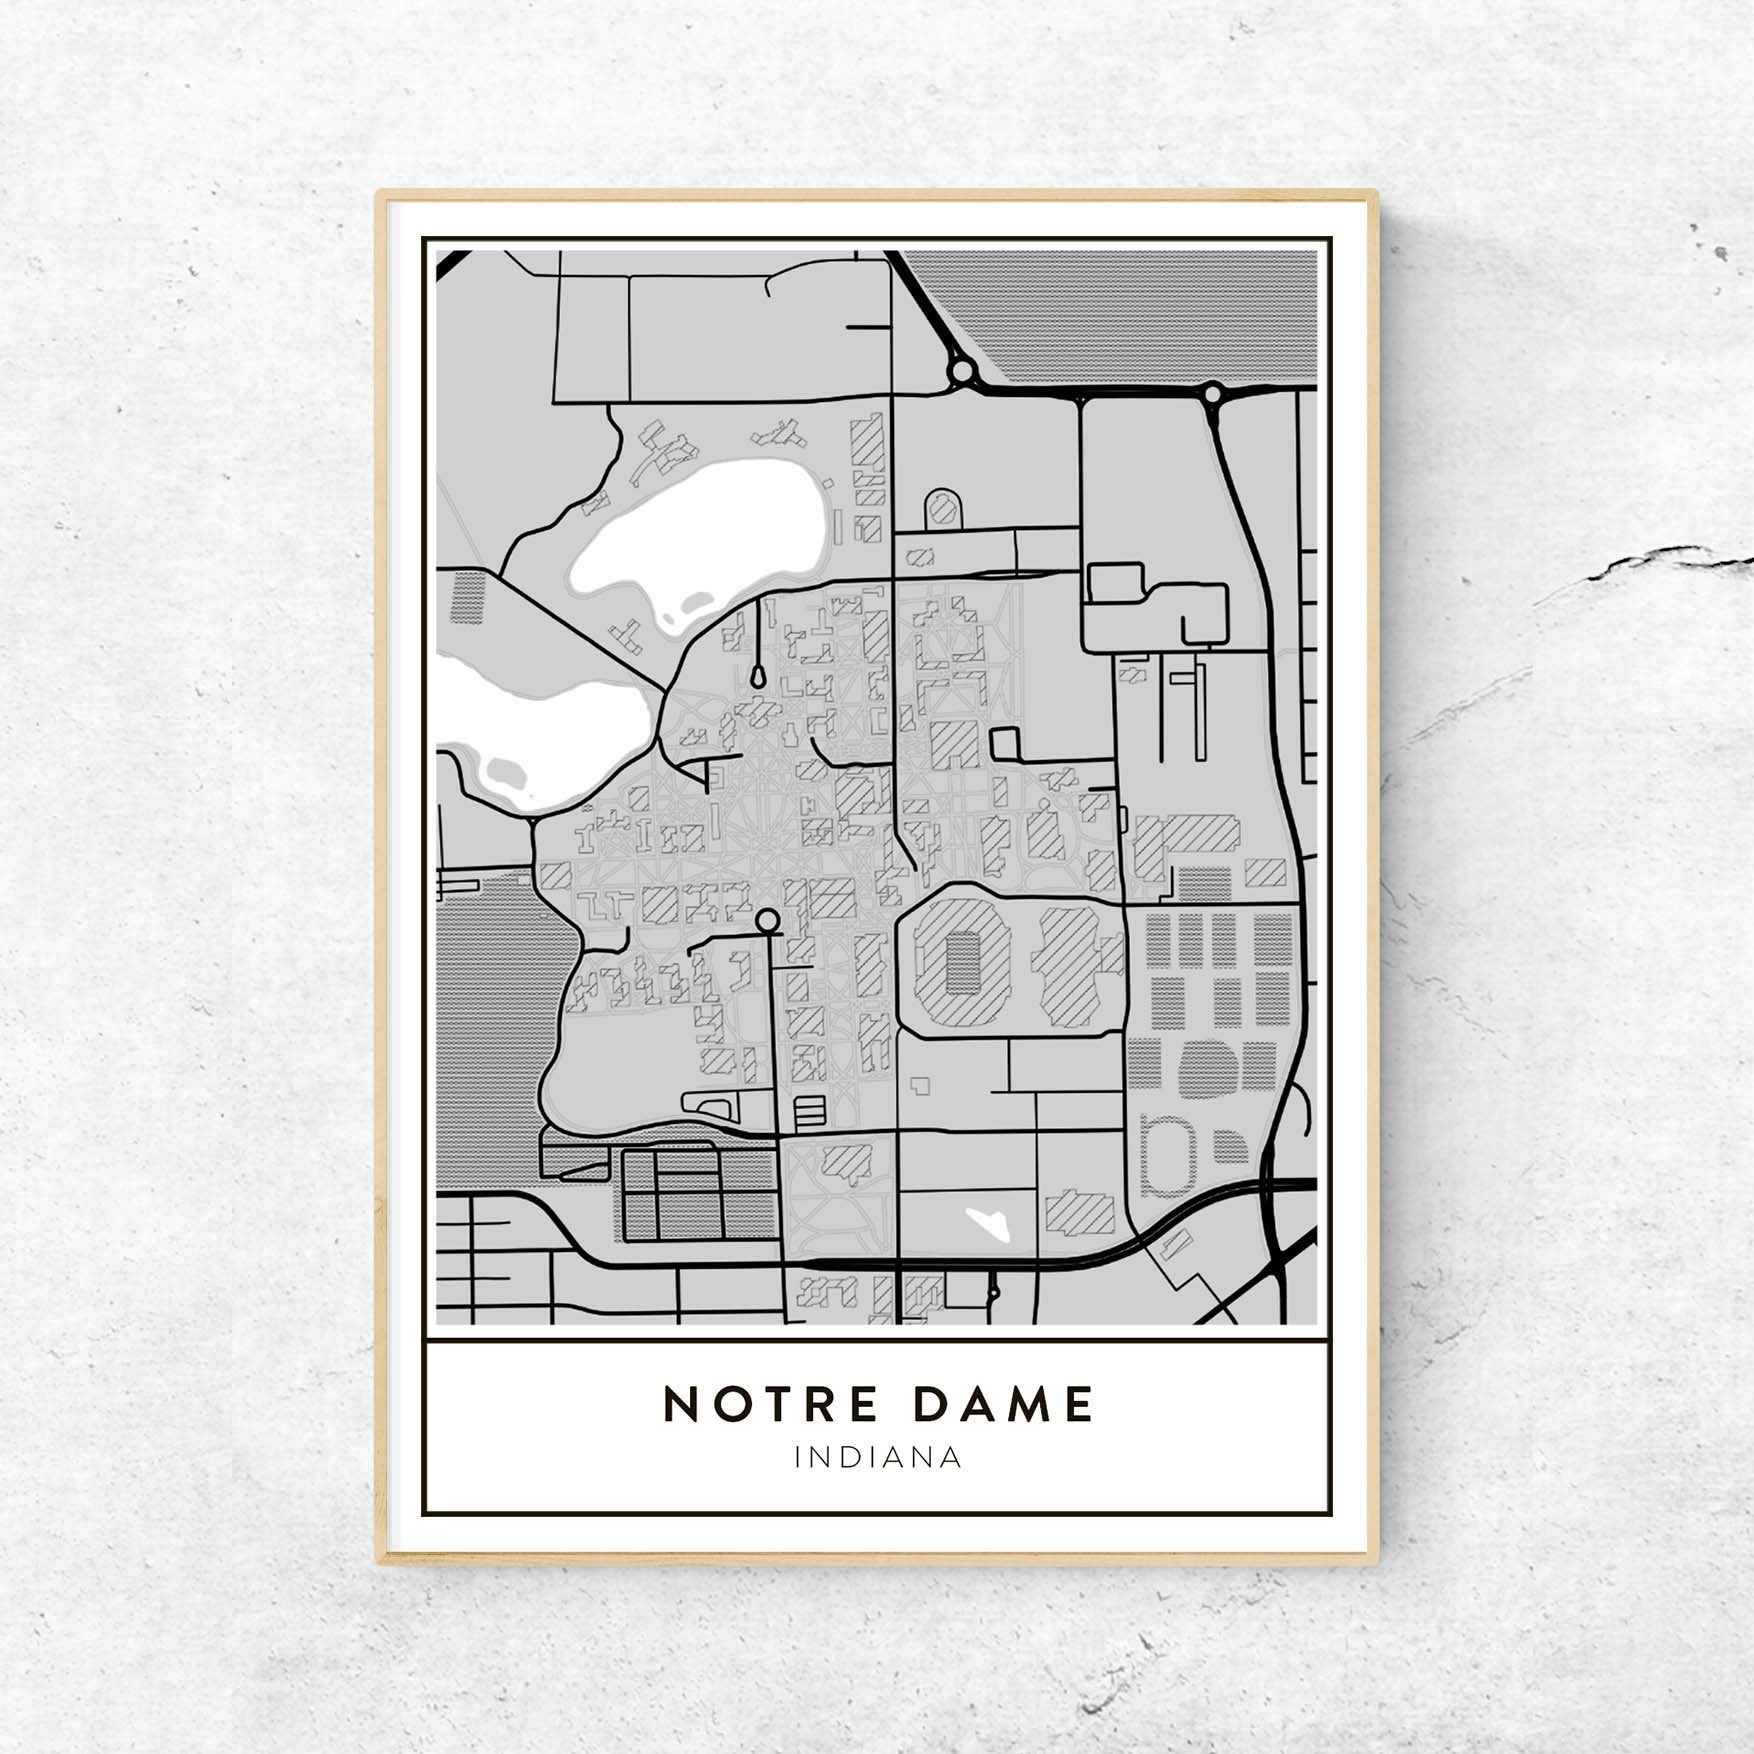 Golden Gate Design Co. - Custom Map Art Prints of Your Favorite City on yale campus tours, yale cross campus snow, yale central campus, yale west campus, yale bowl map, yale campus library, yale new haven map, yale university, yale basketball, yale school map, yale admissions requirements, yale residential colleges, yale state map, yale campus painting, yale parking map, yale athletics facilities, yale football, yale buildings map, yale mascot,